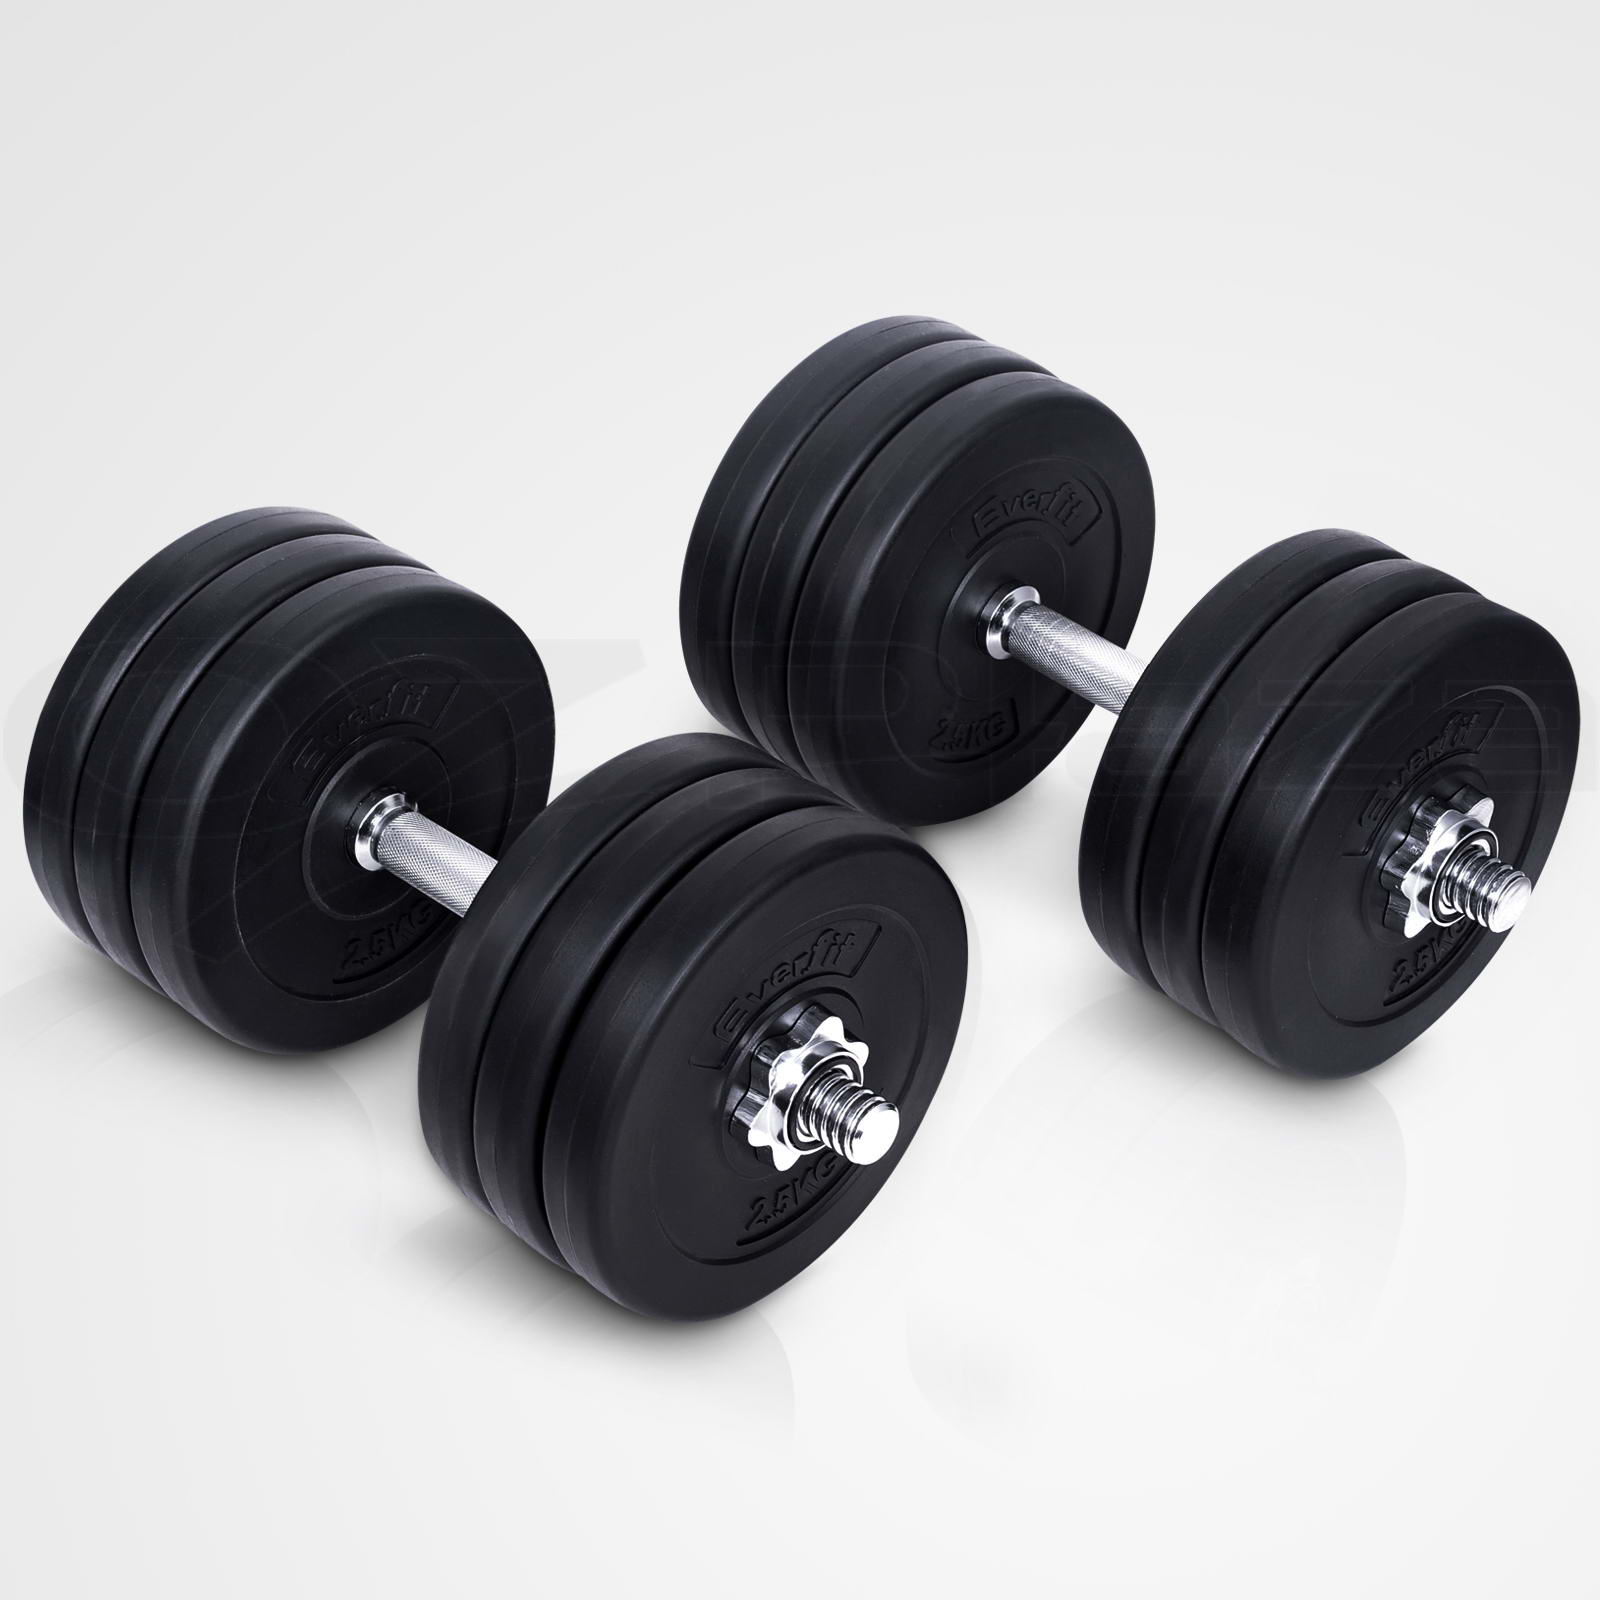 Best Home Dumbbell Set: Dumbbell Set Everfit Weight Dumbbells Plates Home Gym